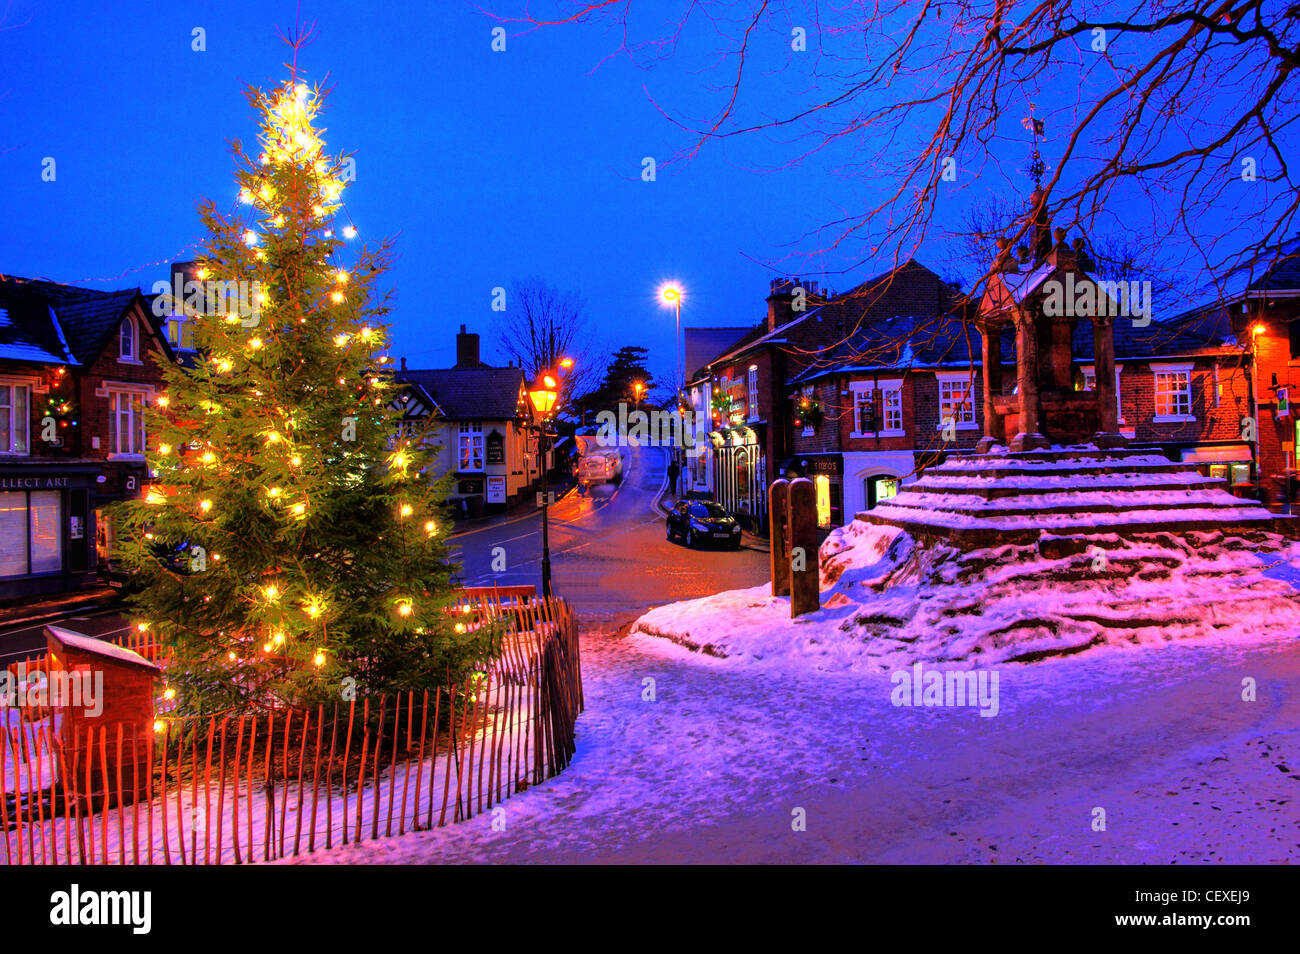 Xmas scene with snow at the Christmas Tree at Lymm Cross, Lymm village, Cheshire, England, UK - Stock Image